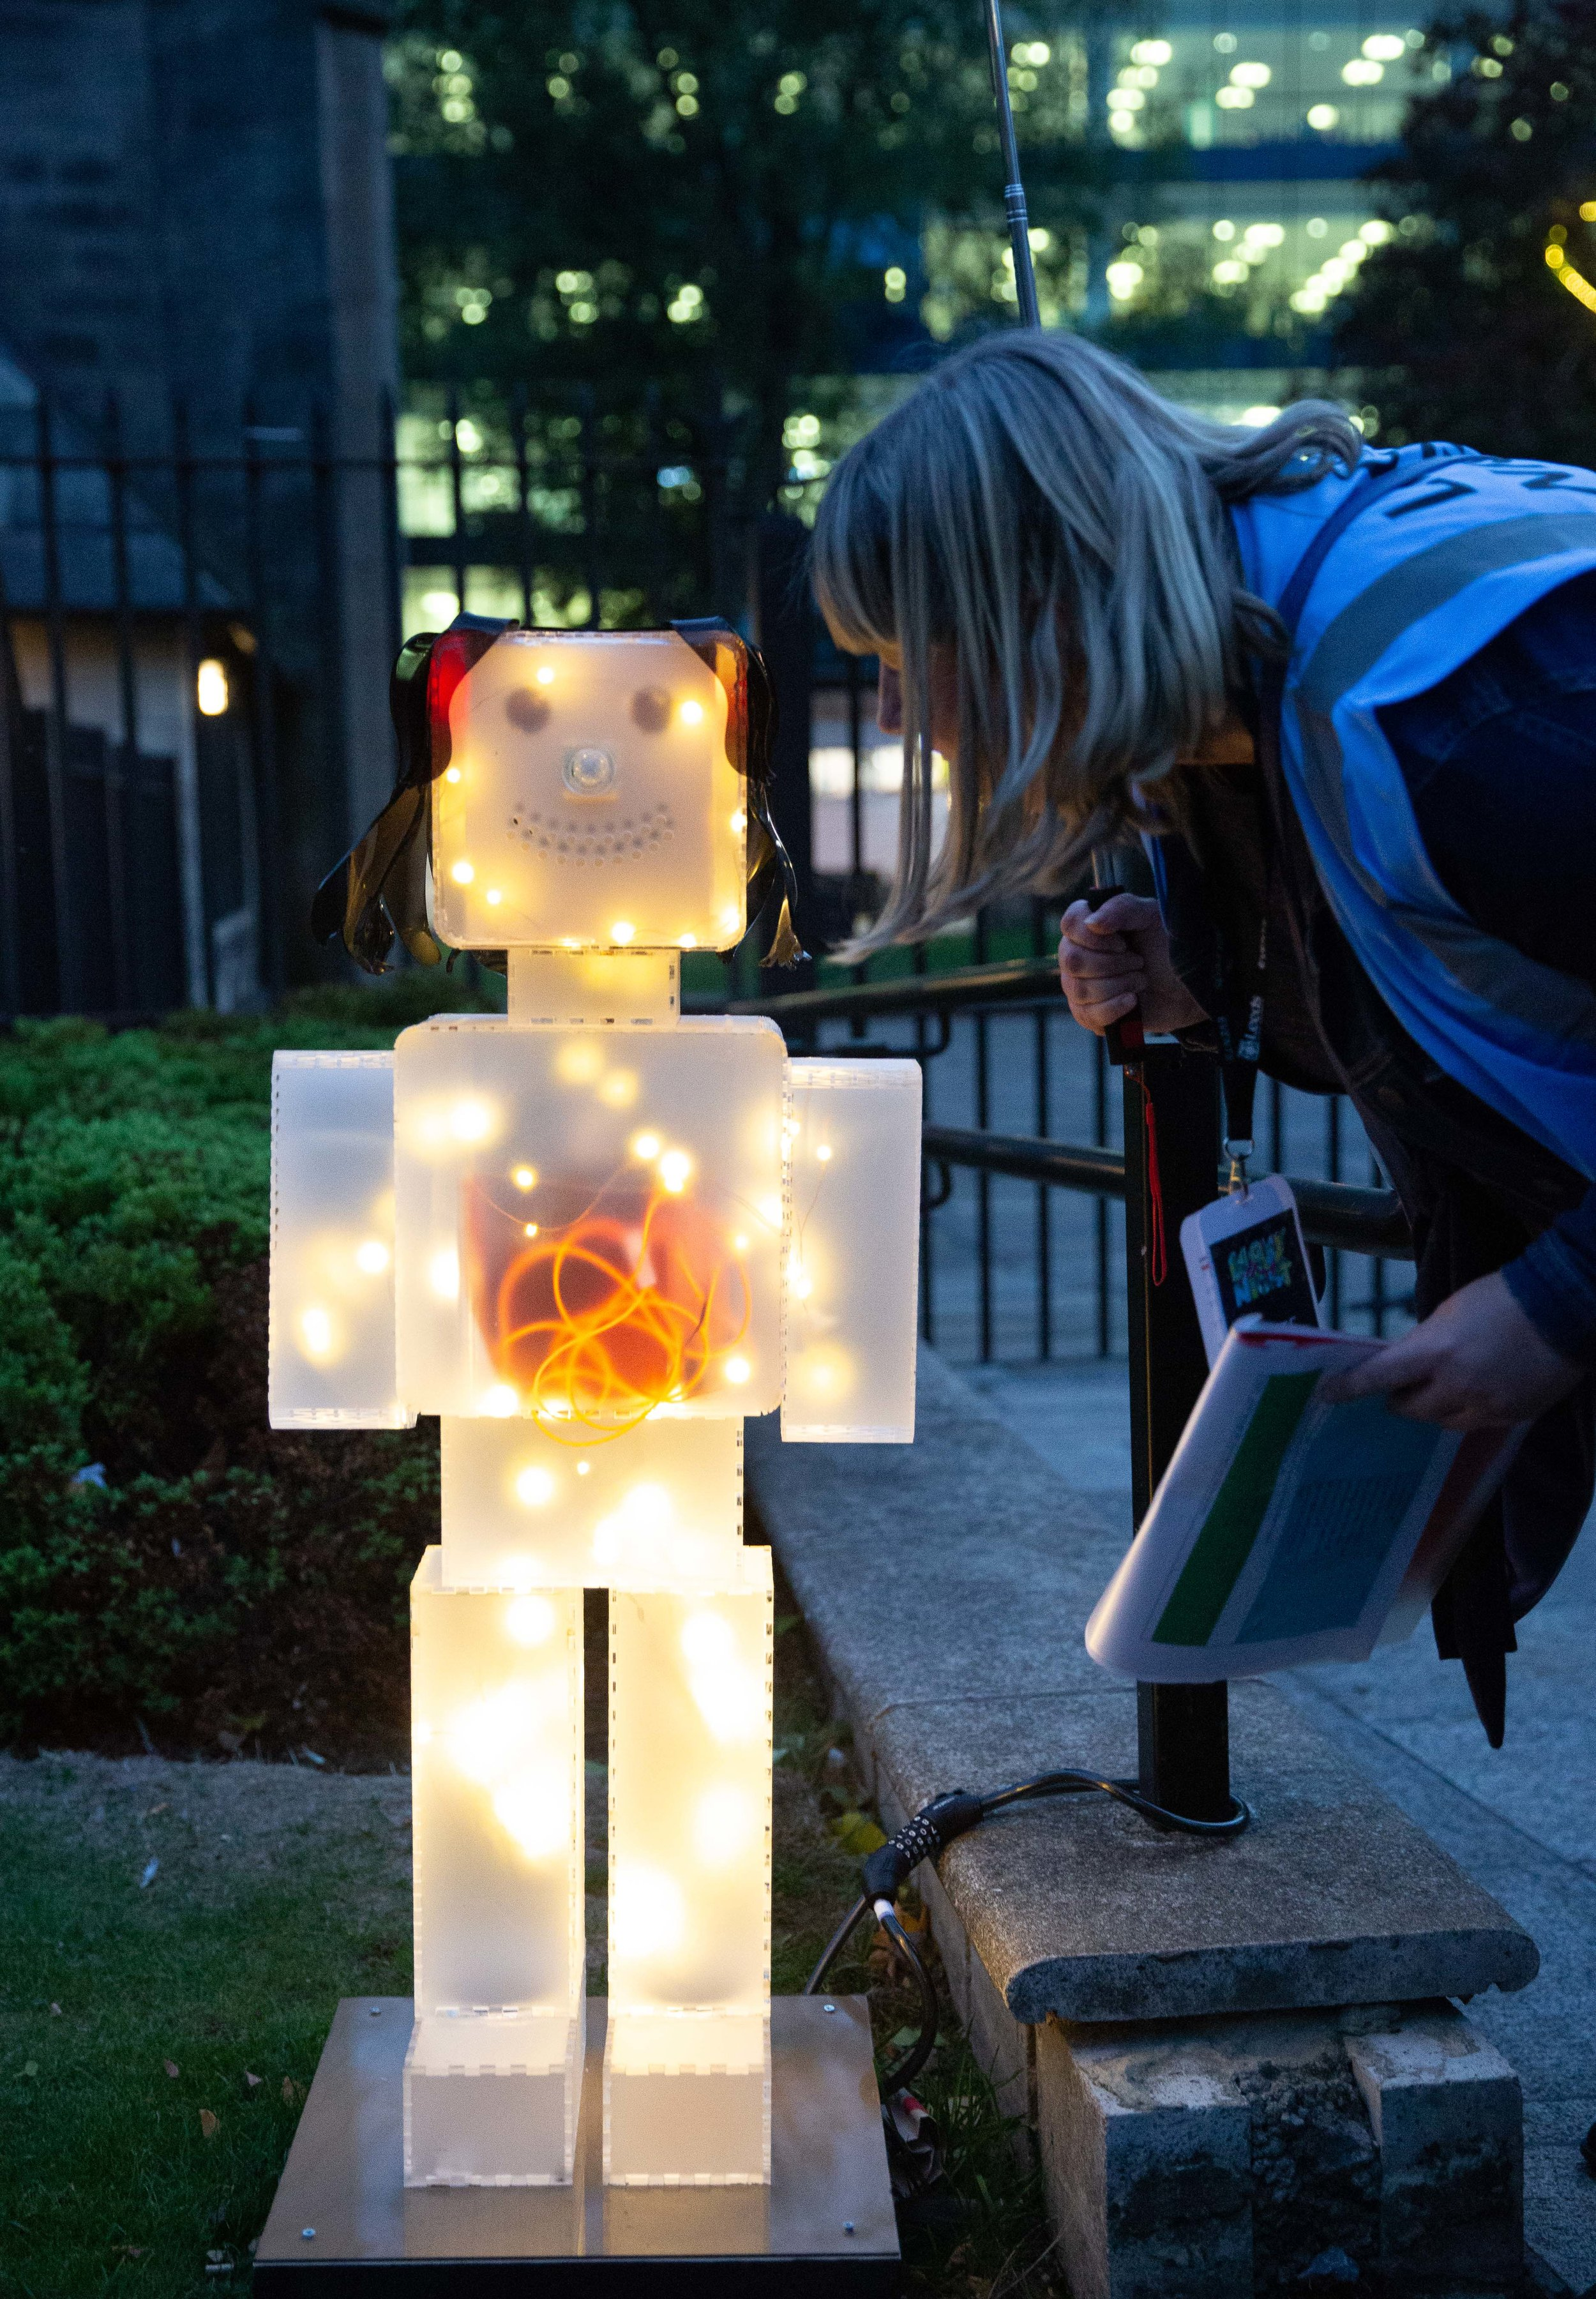 Robot Vivian at St John's Church,  Light Night Leeds 2018,  Leeds, UK